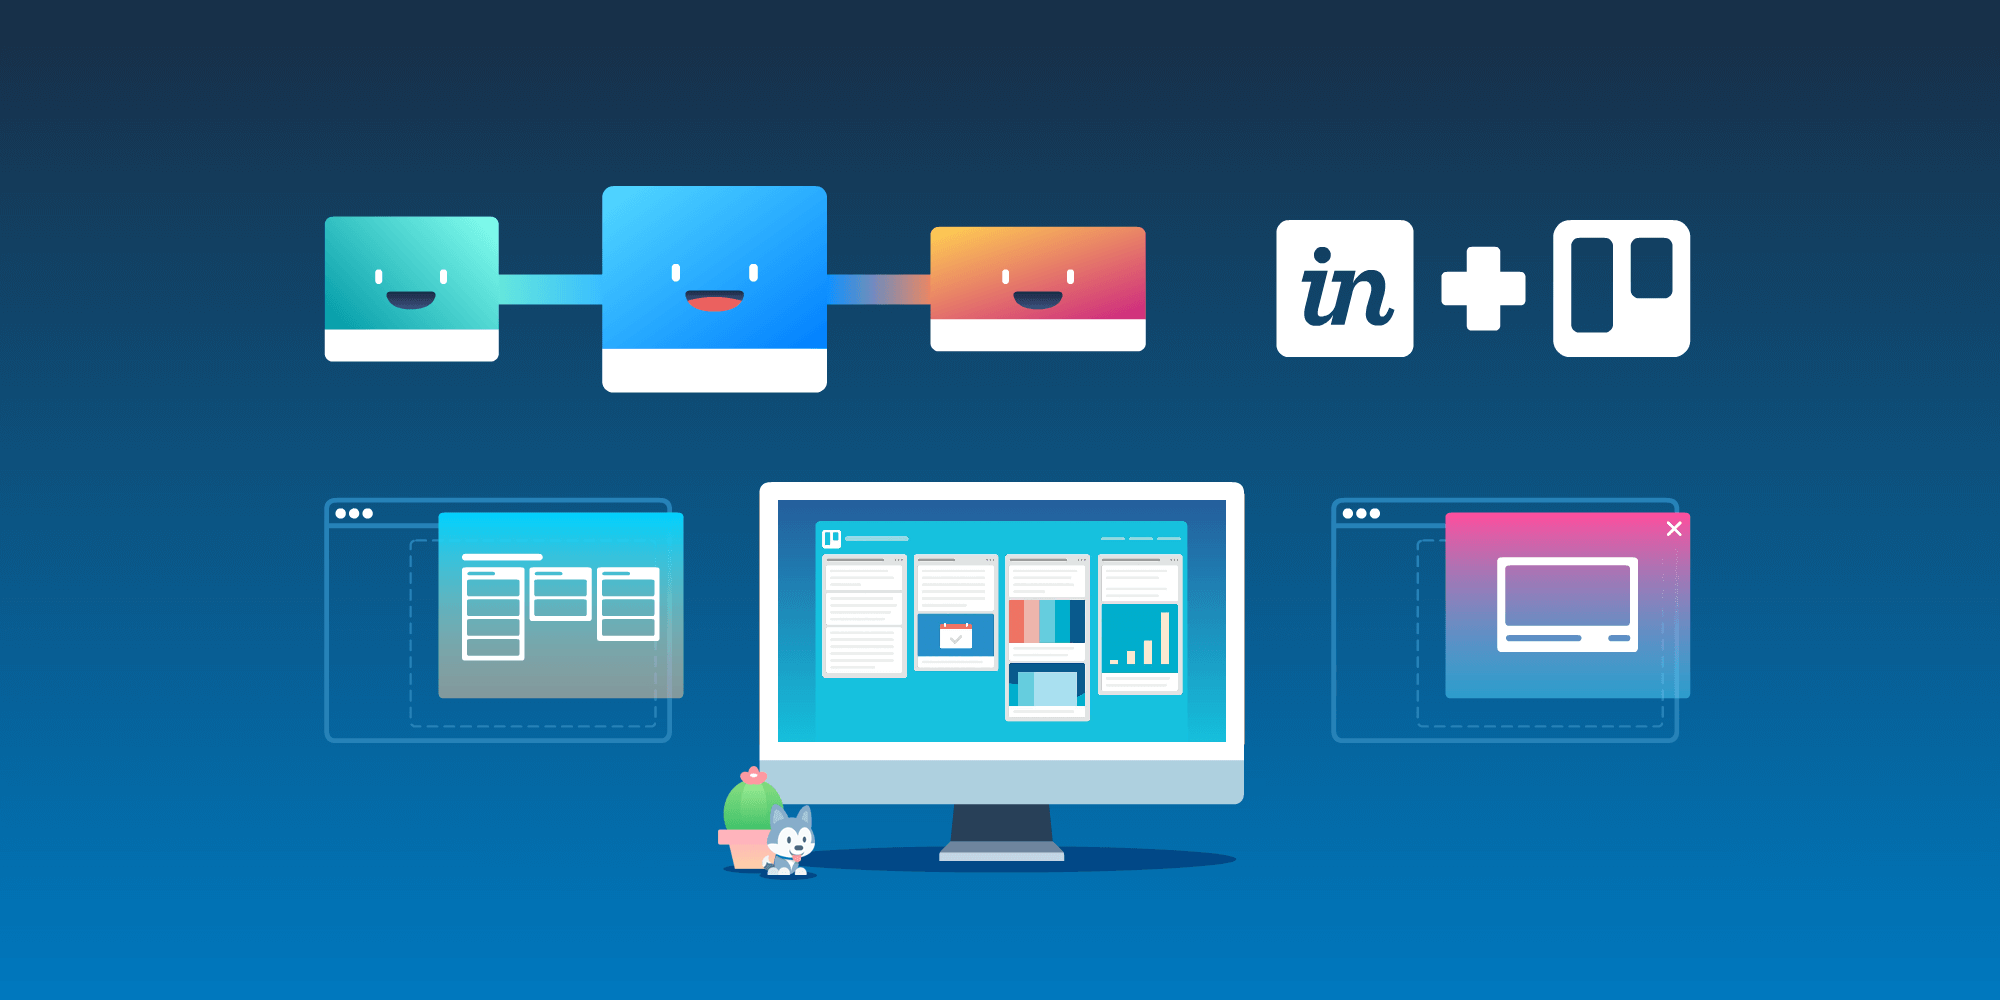 25 Million Users! Celebrate With 4 New Top-Requested Trello Features